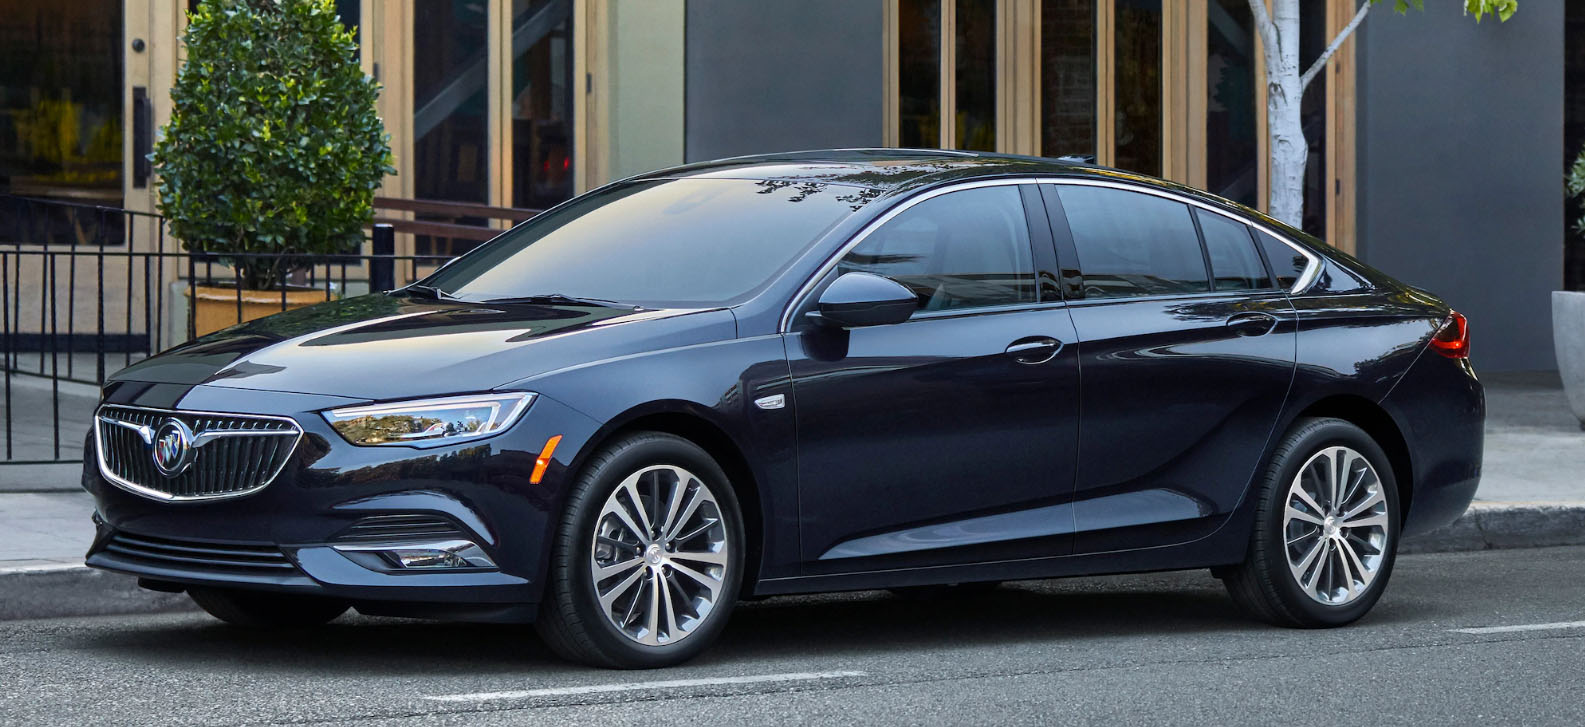 2020 Buick Regal Sportback Main Img